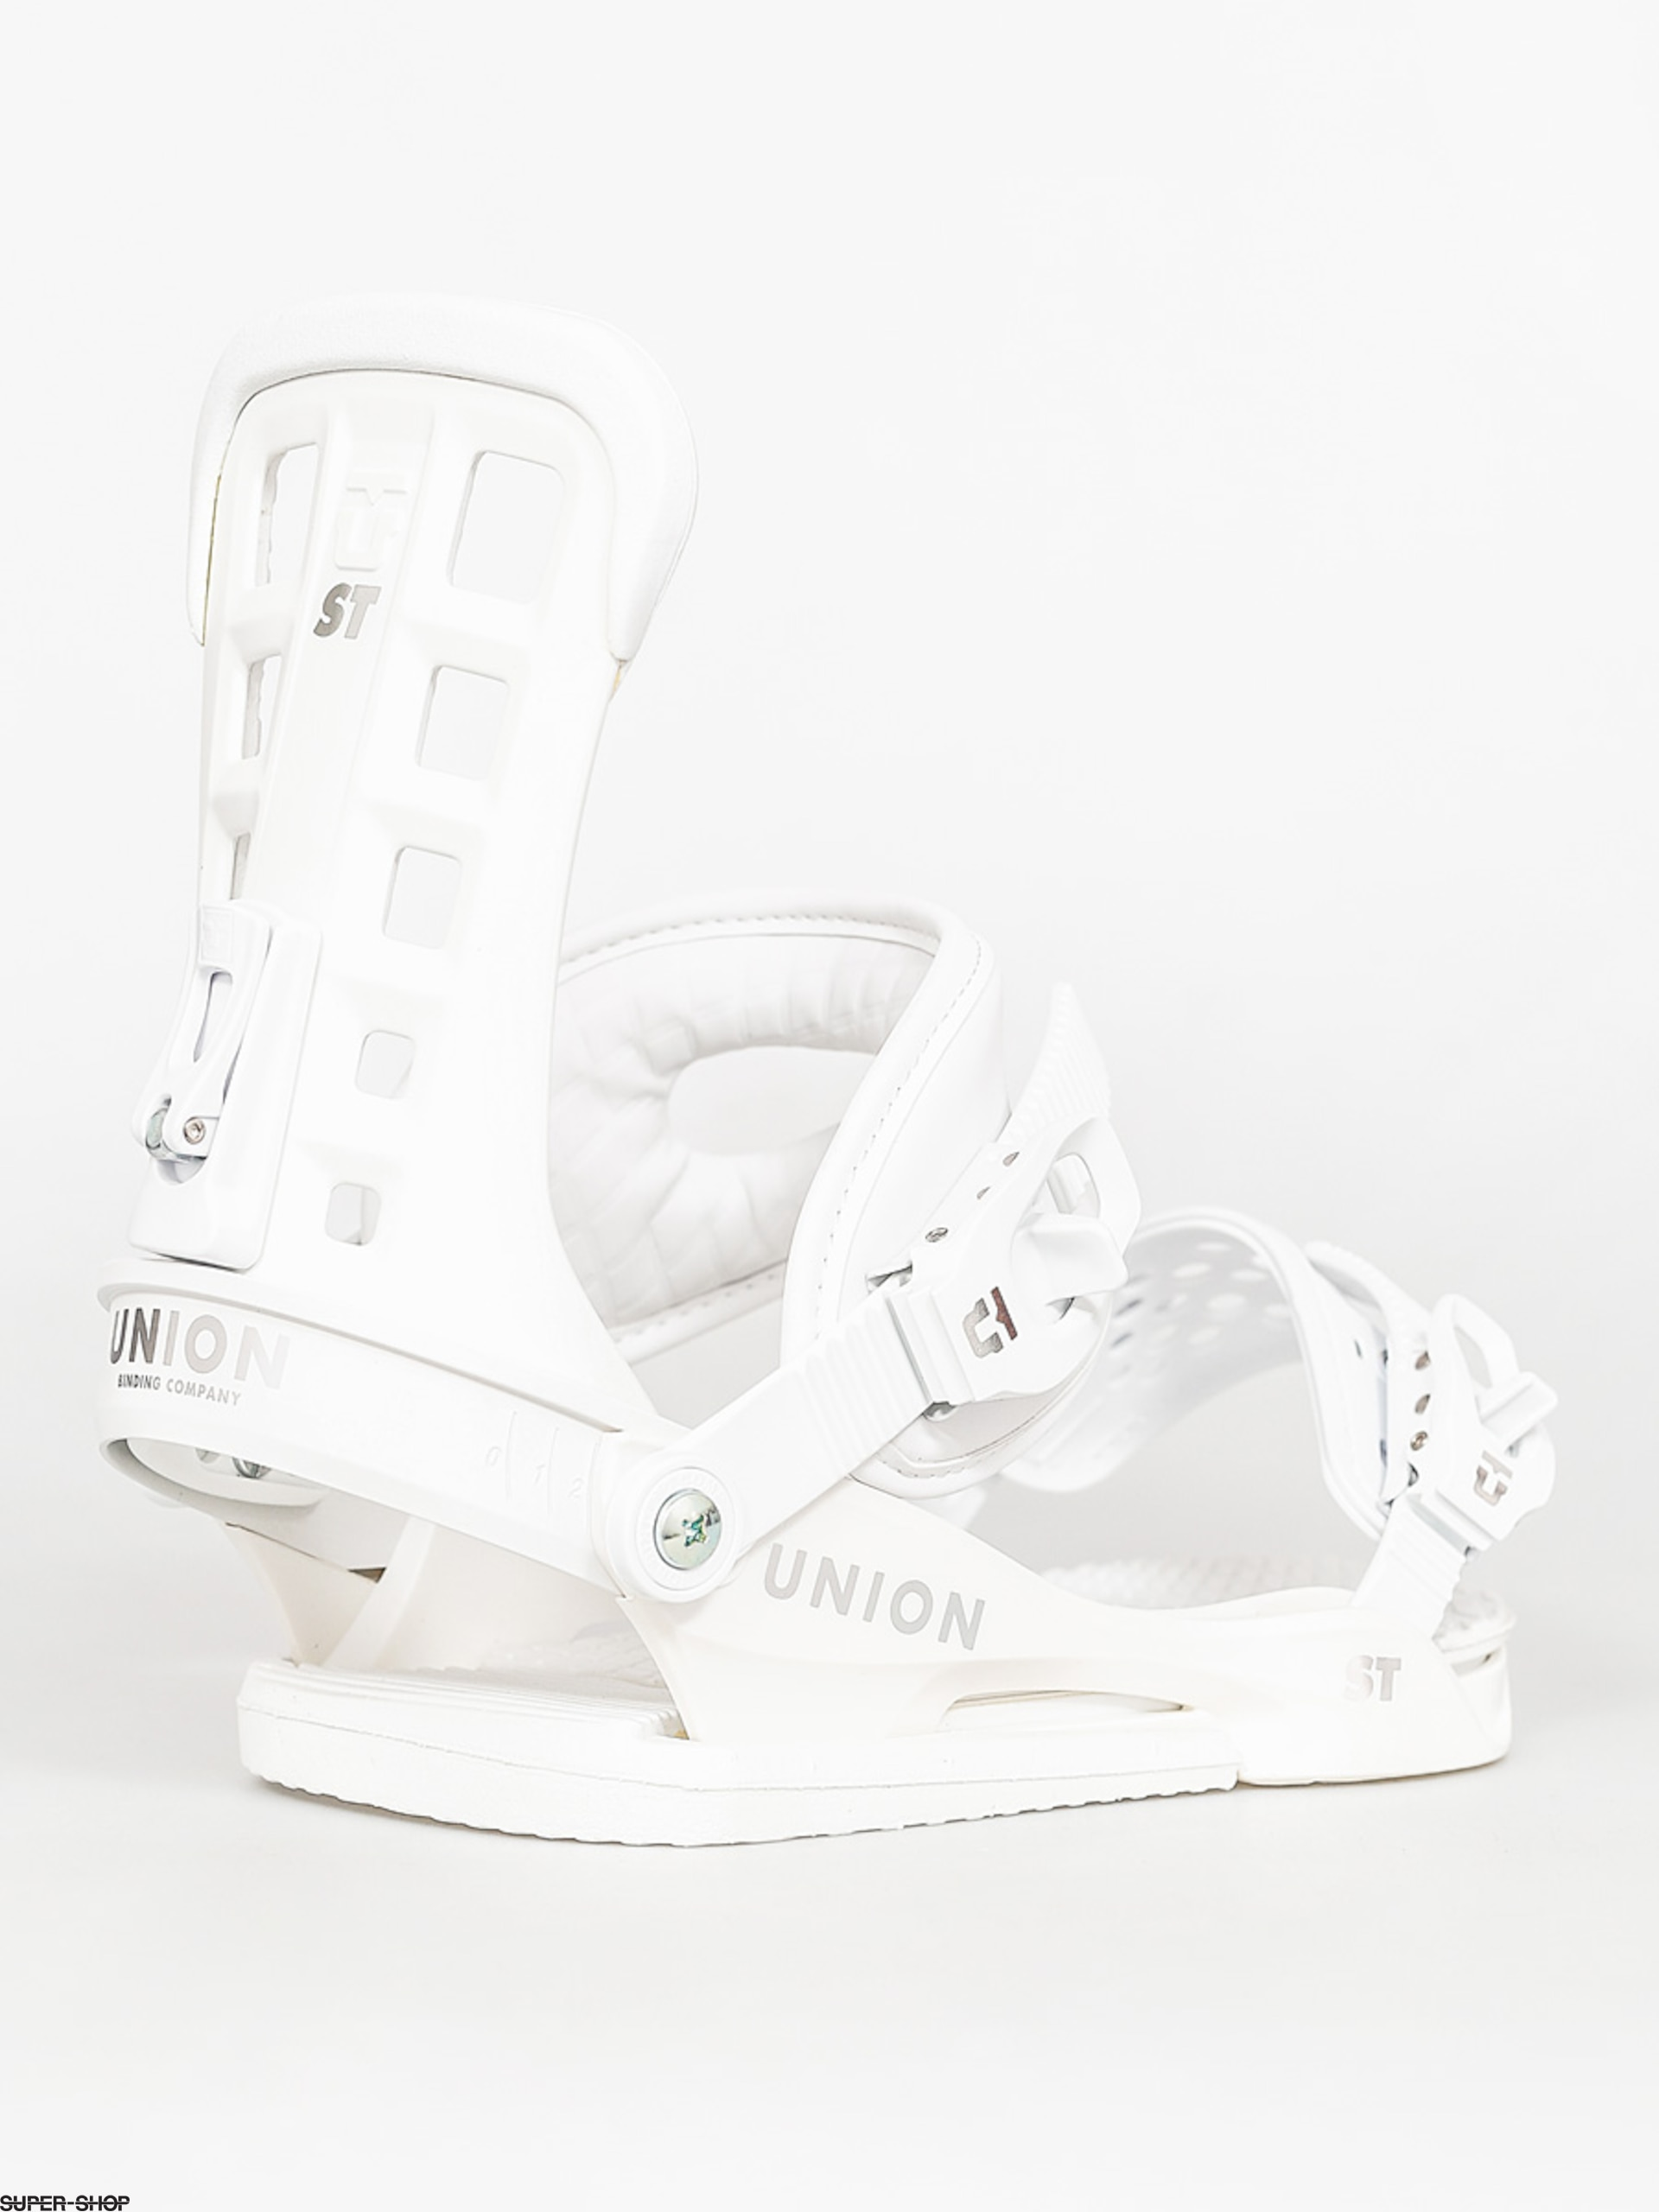 Union Snowboard bindings ST (white)